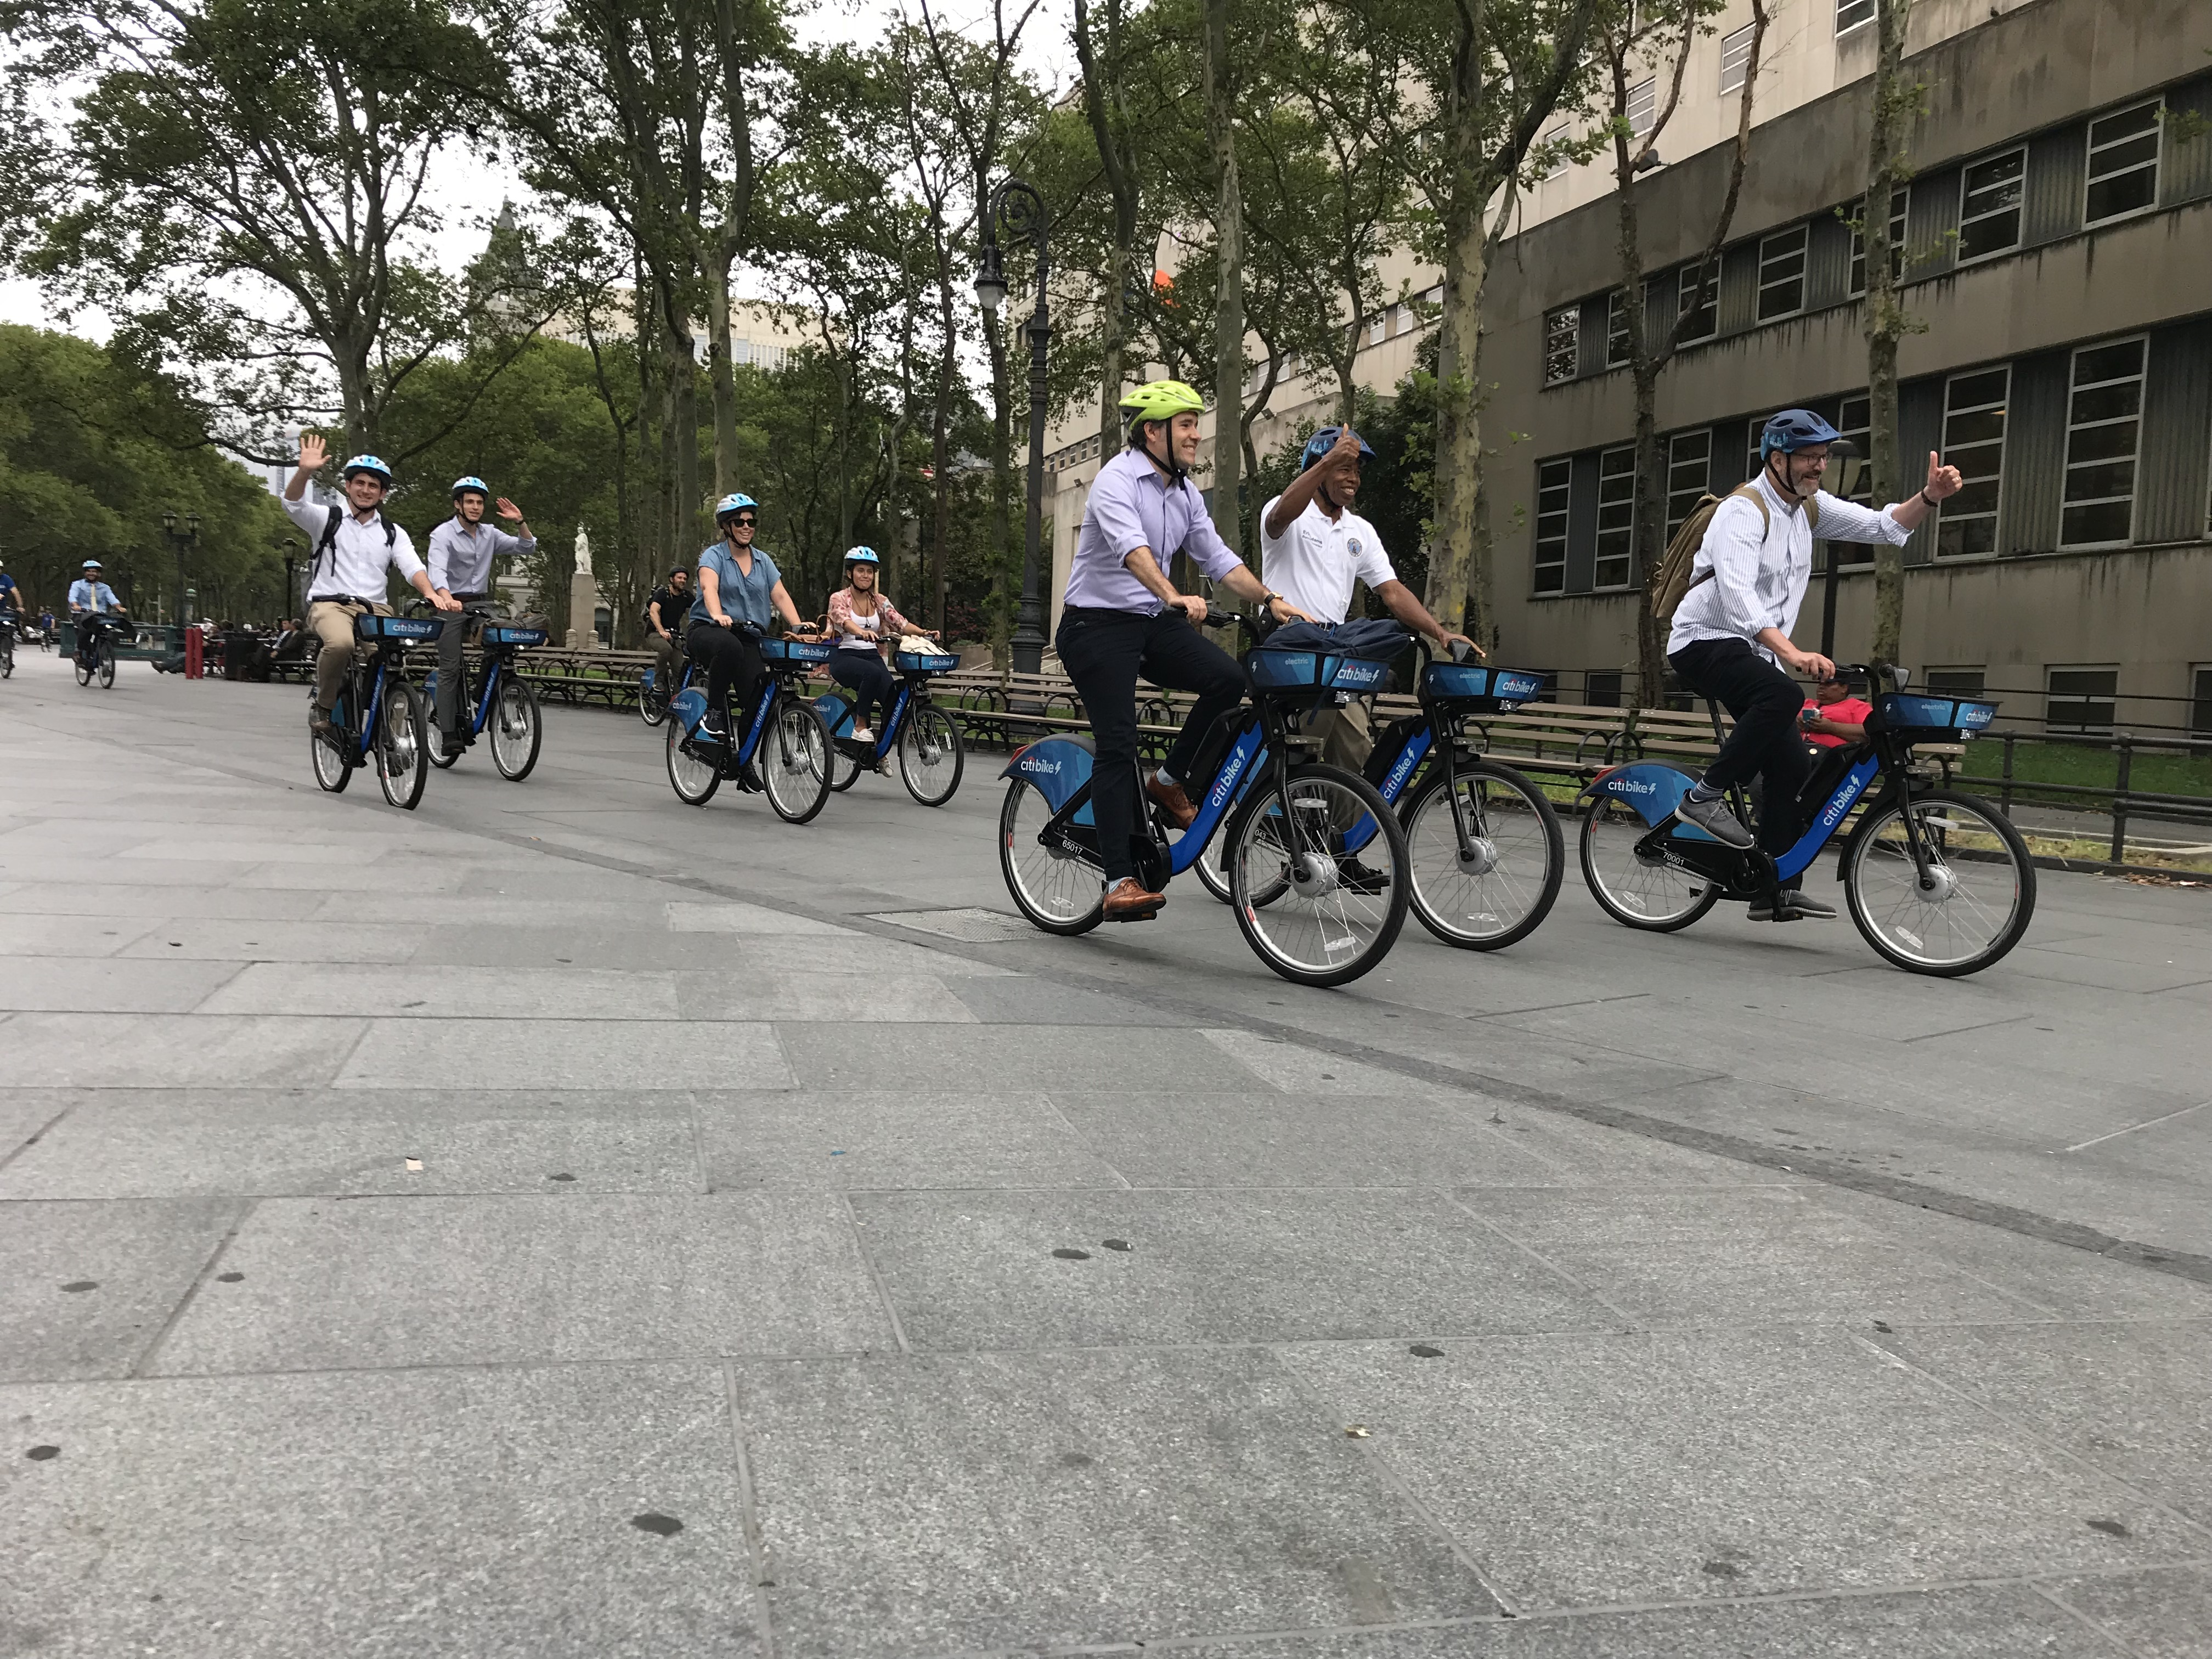 Citi Bike's New Electric Bike Is Exciting For Riders (If